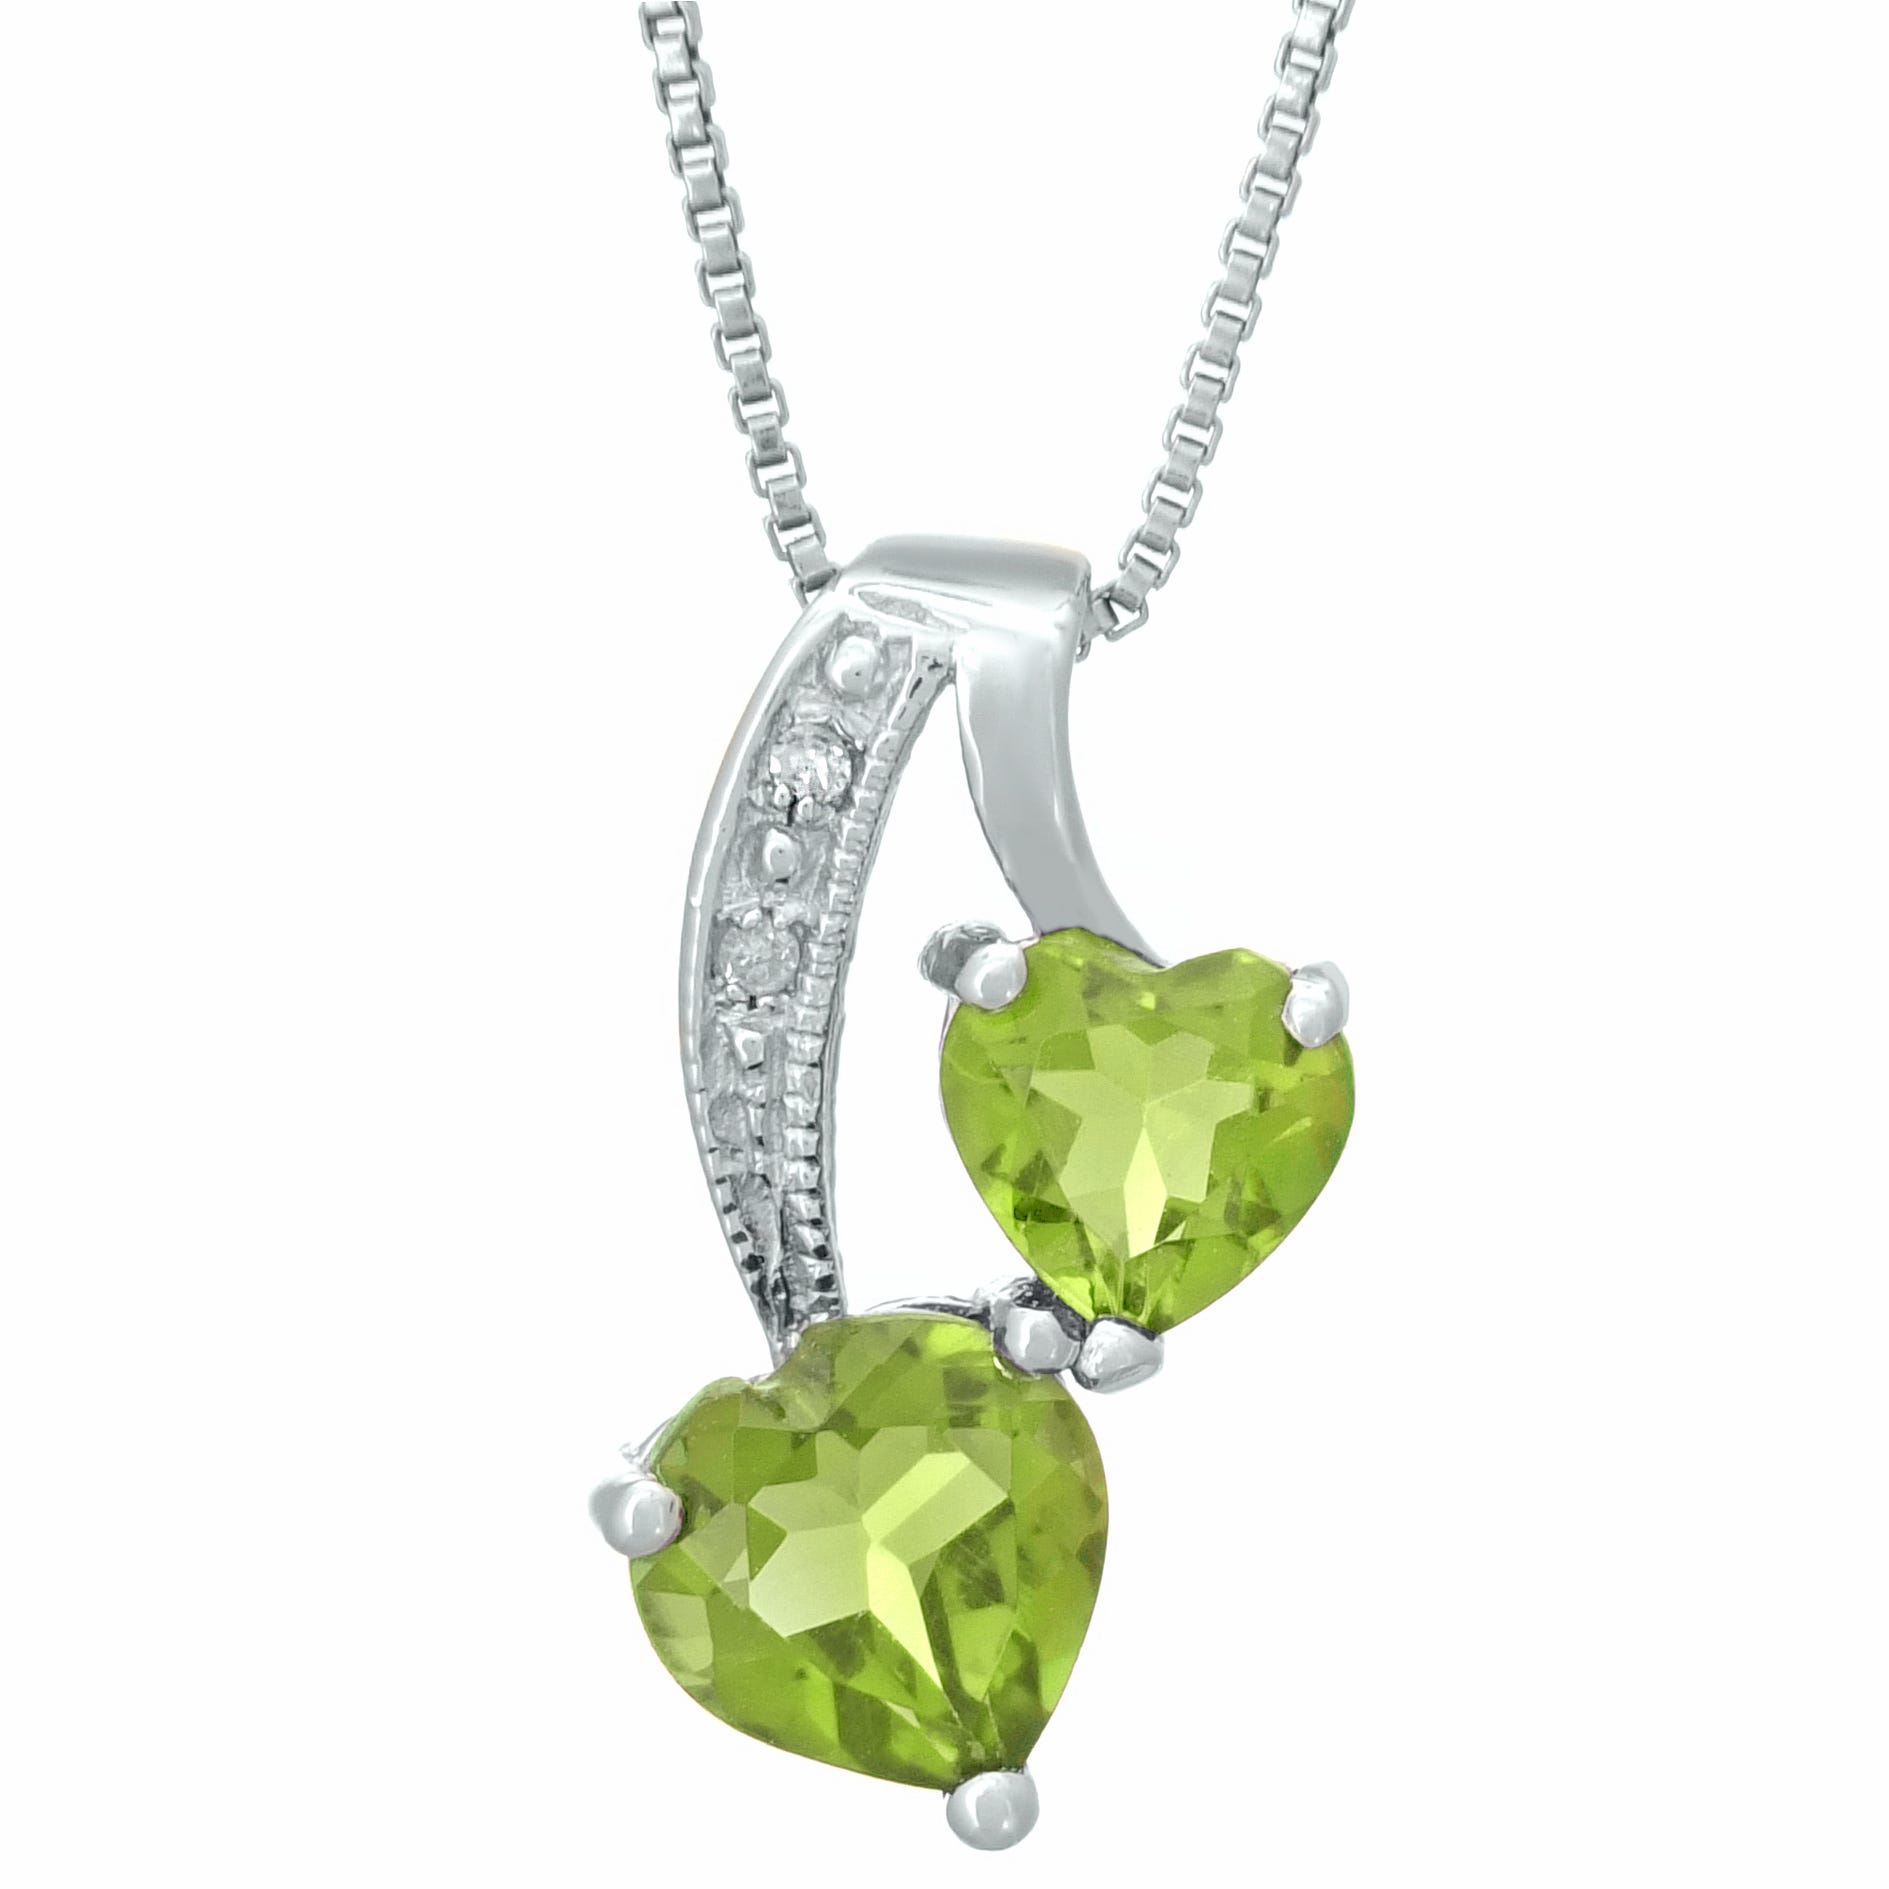 Heart Genuine Peridot Diamond Sterling Silver Pendant 18